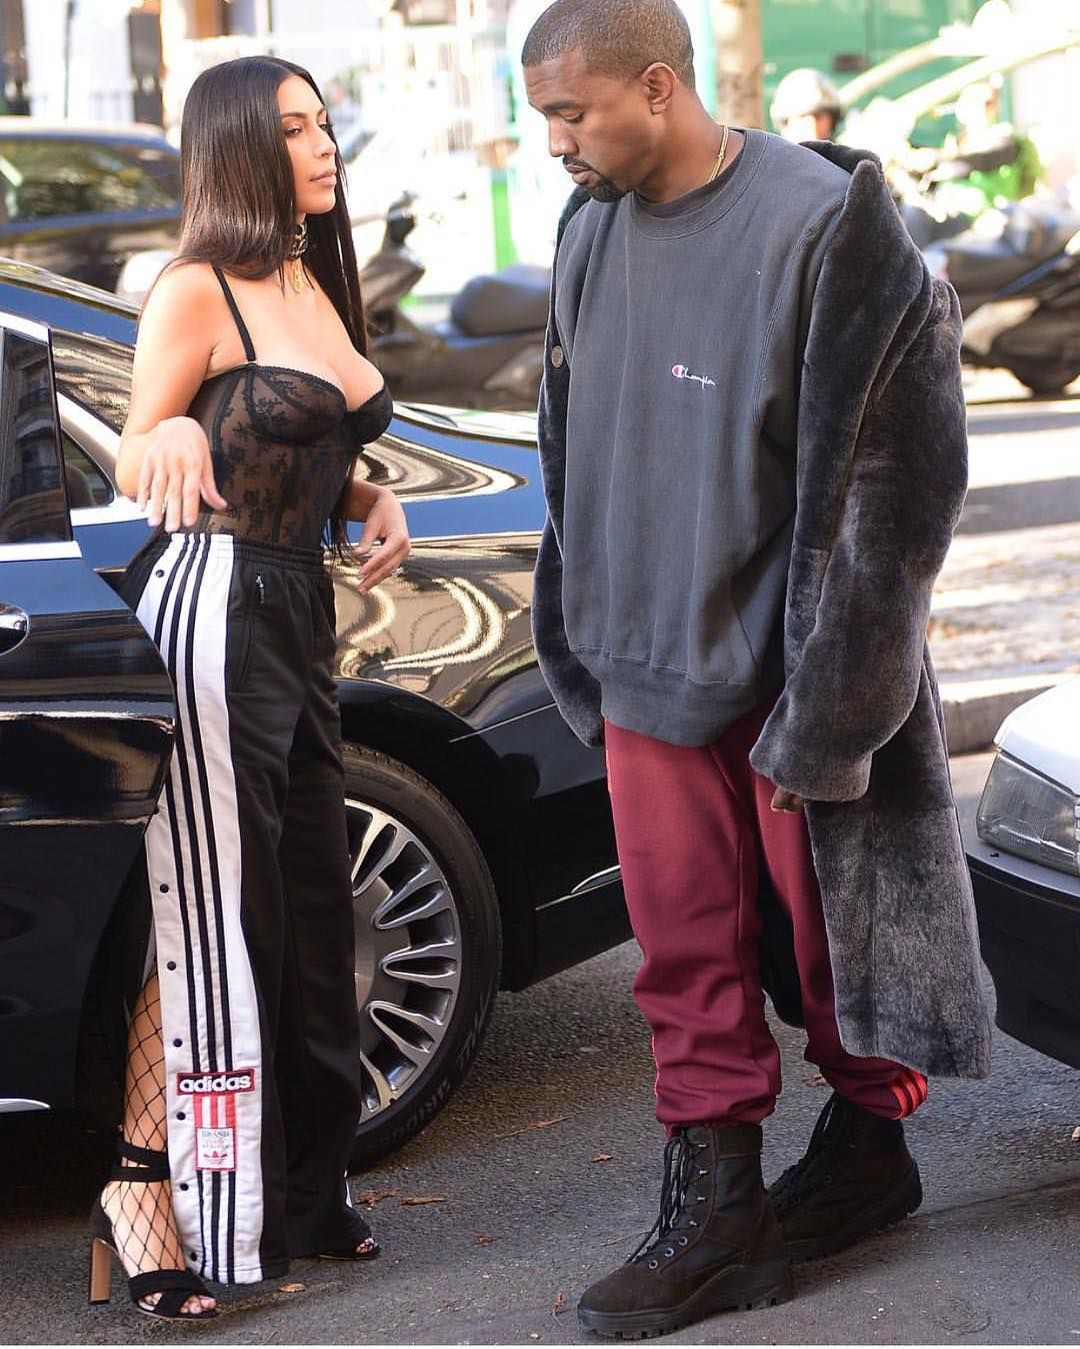 Kanye West Kanyewest Daily Fotos Y Videos De Instagram Yeezy Fashion Kanye West Style Kim And Kanye